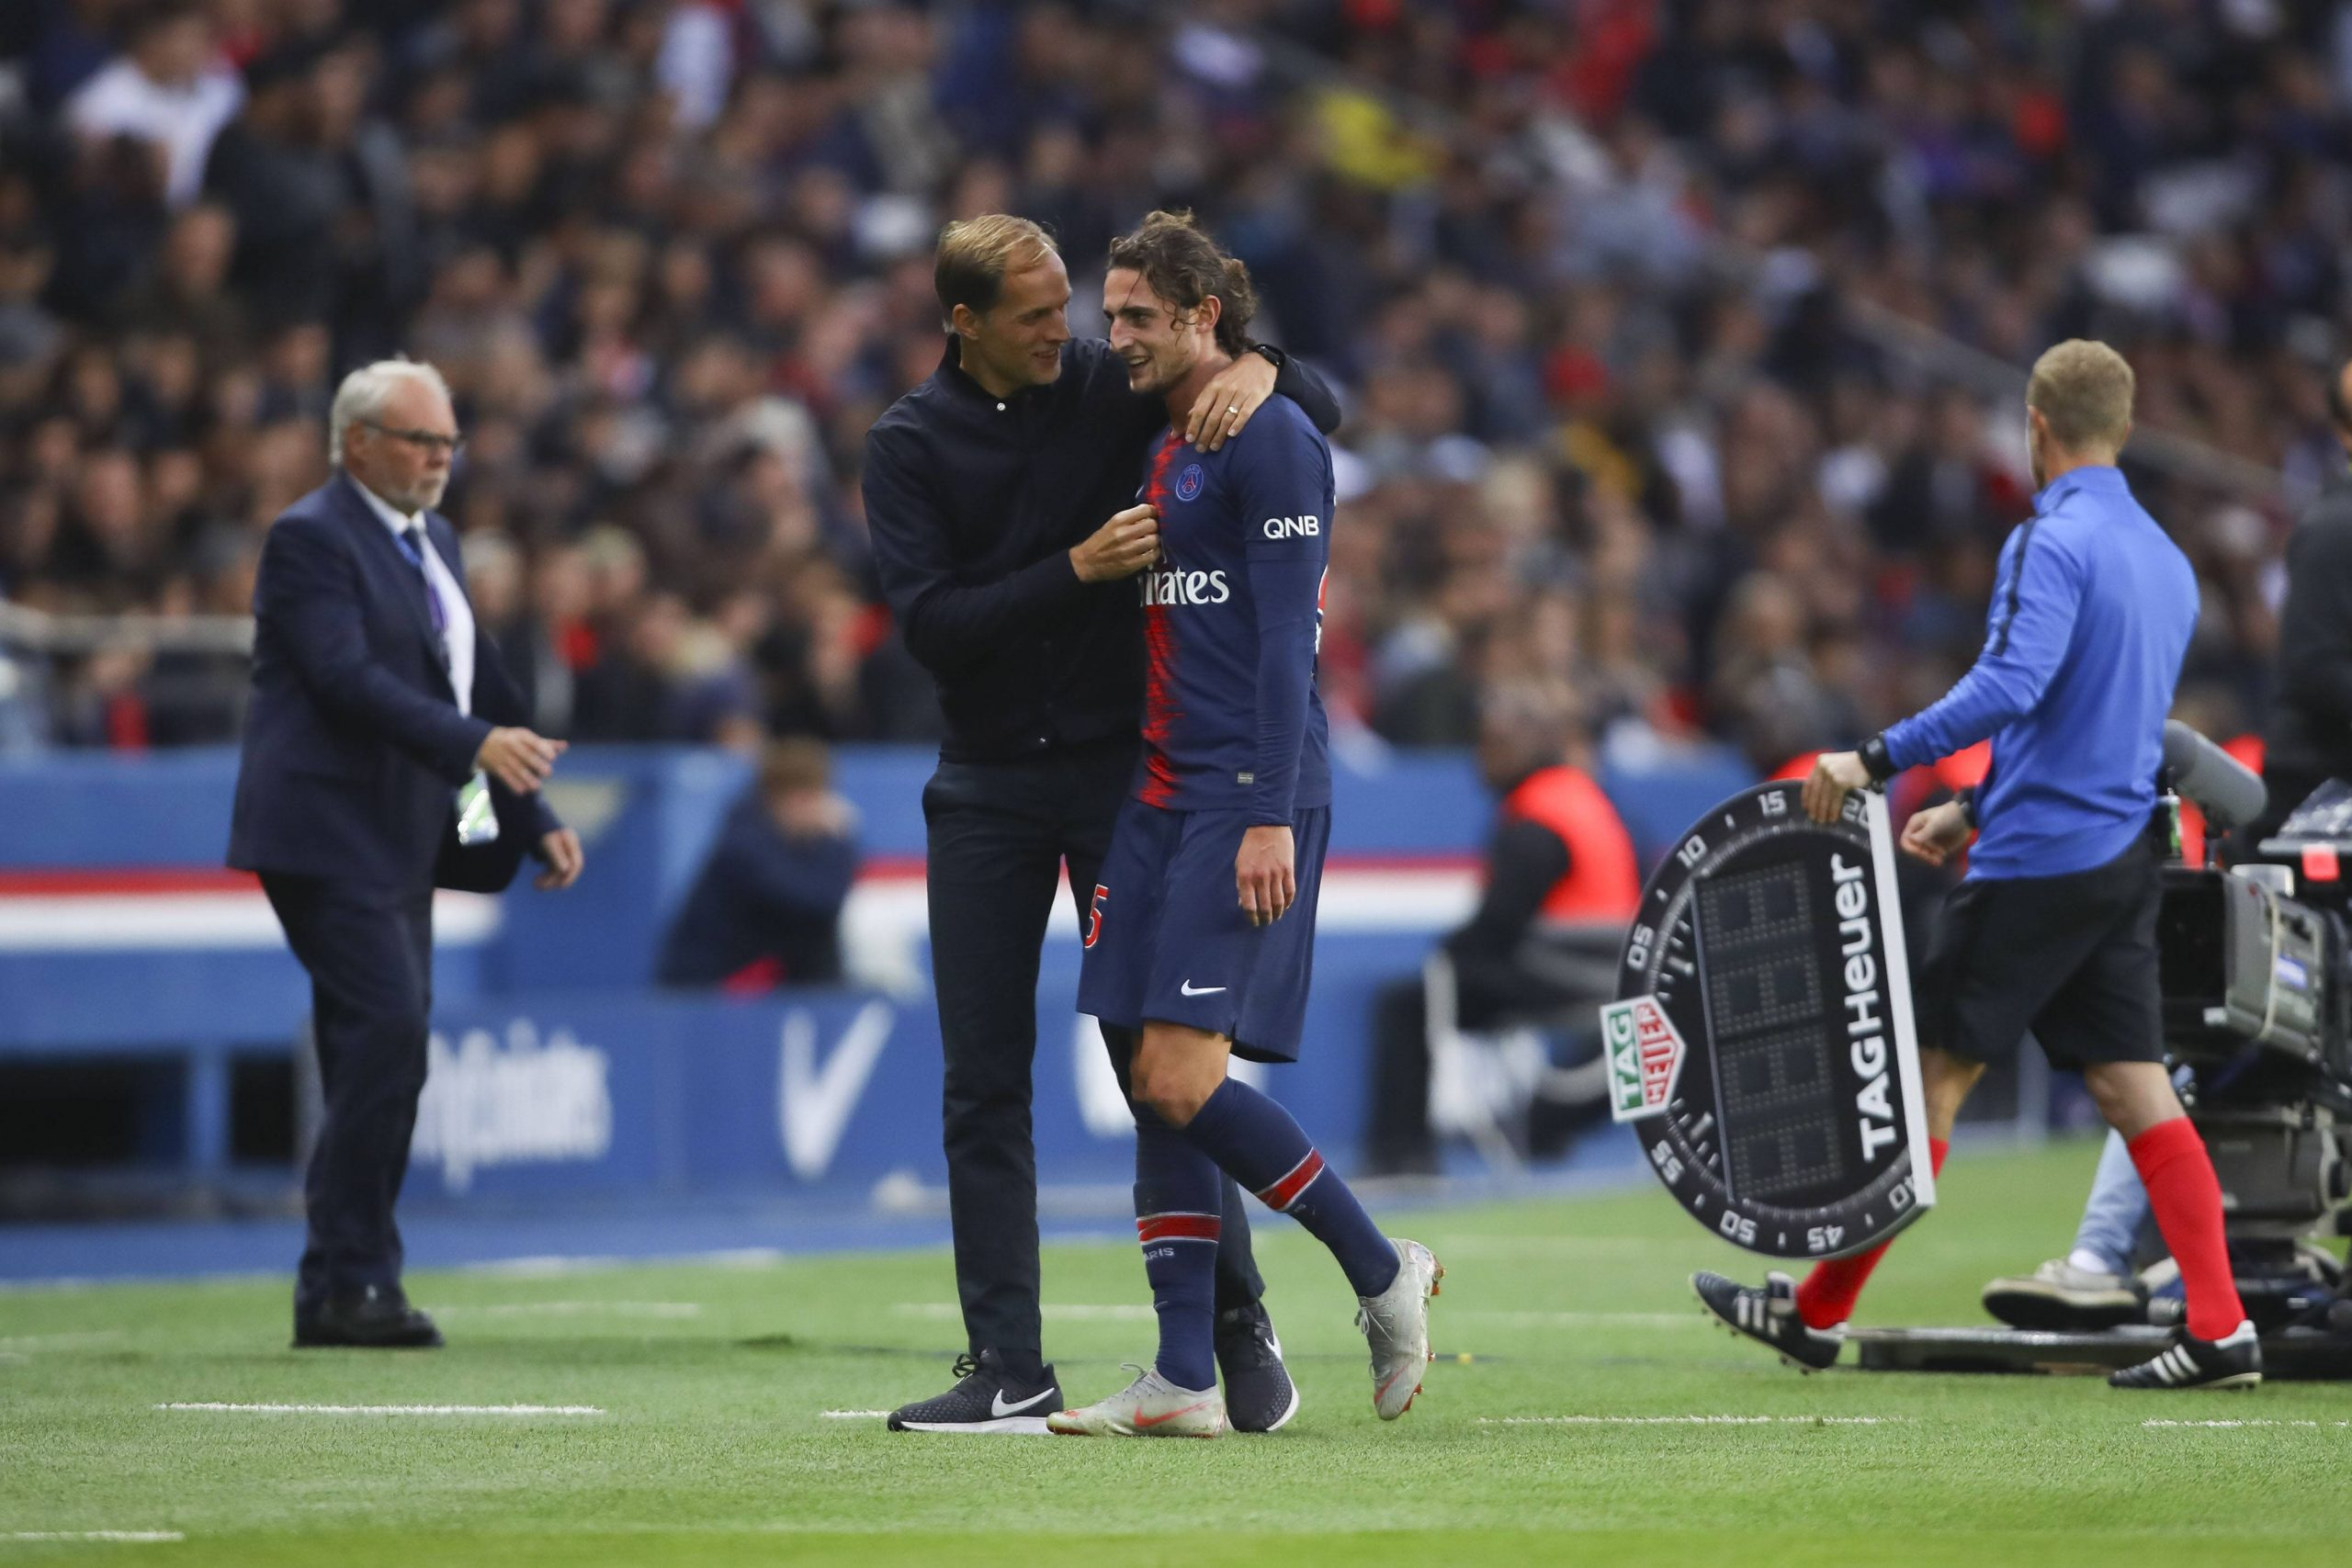 Thomas Tuchel and Adrien Rabiot could reunite at Chelsea. (imago Images)